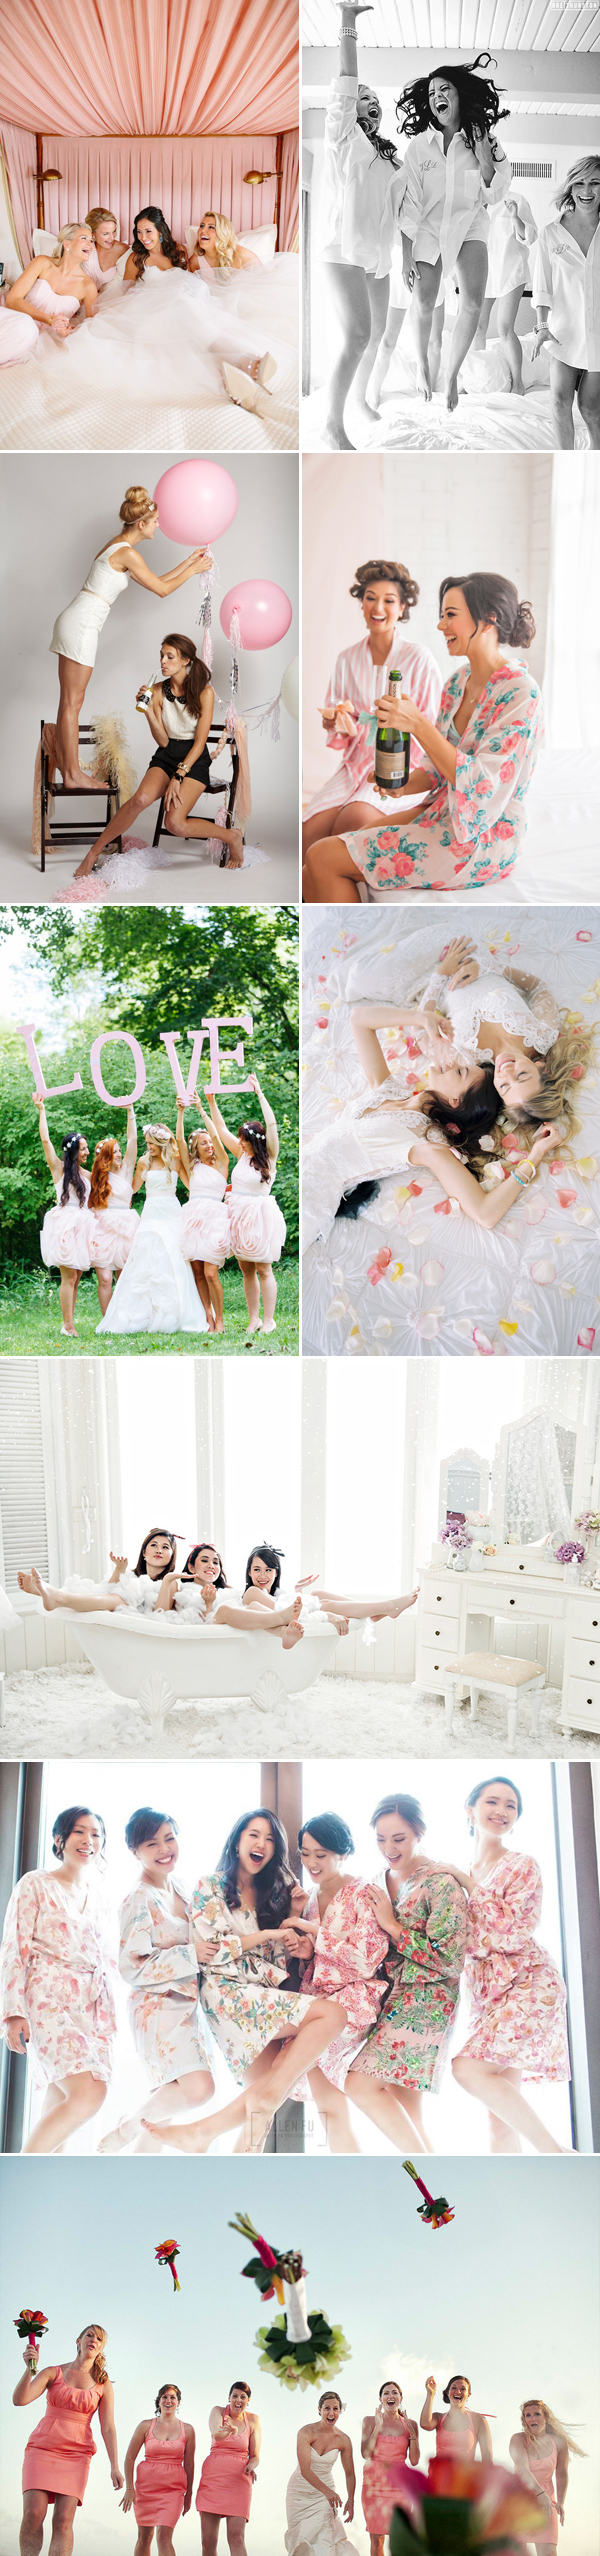 25 Fun Wedding Photo Ideas And Poses For Your Bridesmaids Praise Wedding